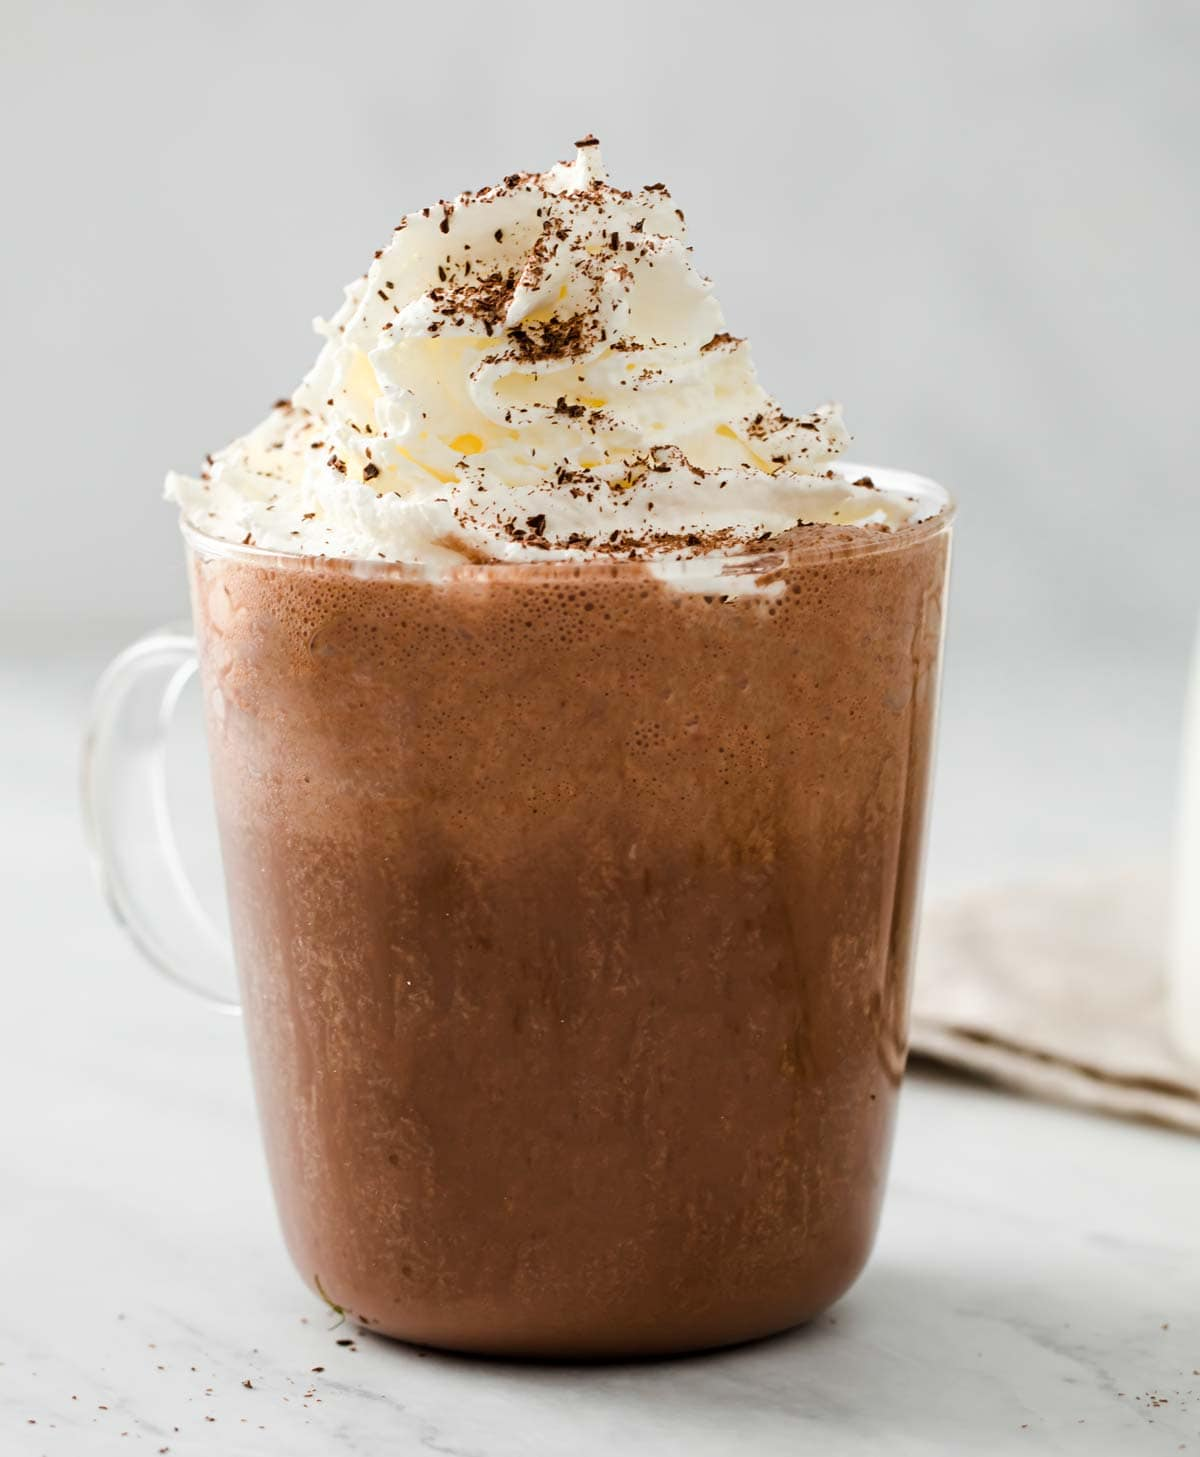 a glass cup filled with frothy hot chocolate topped with cream